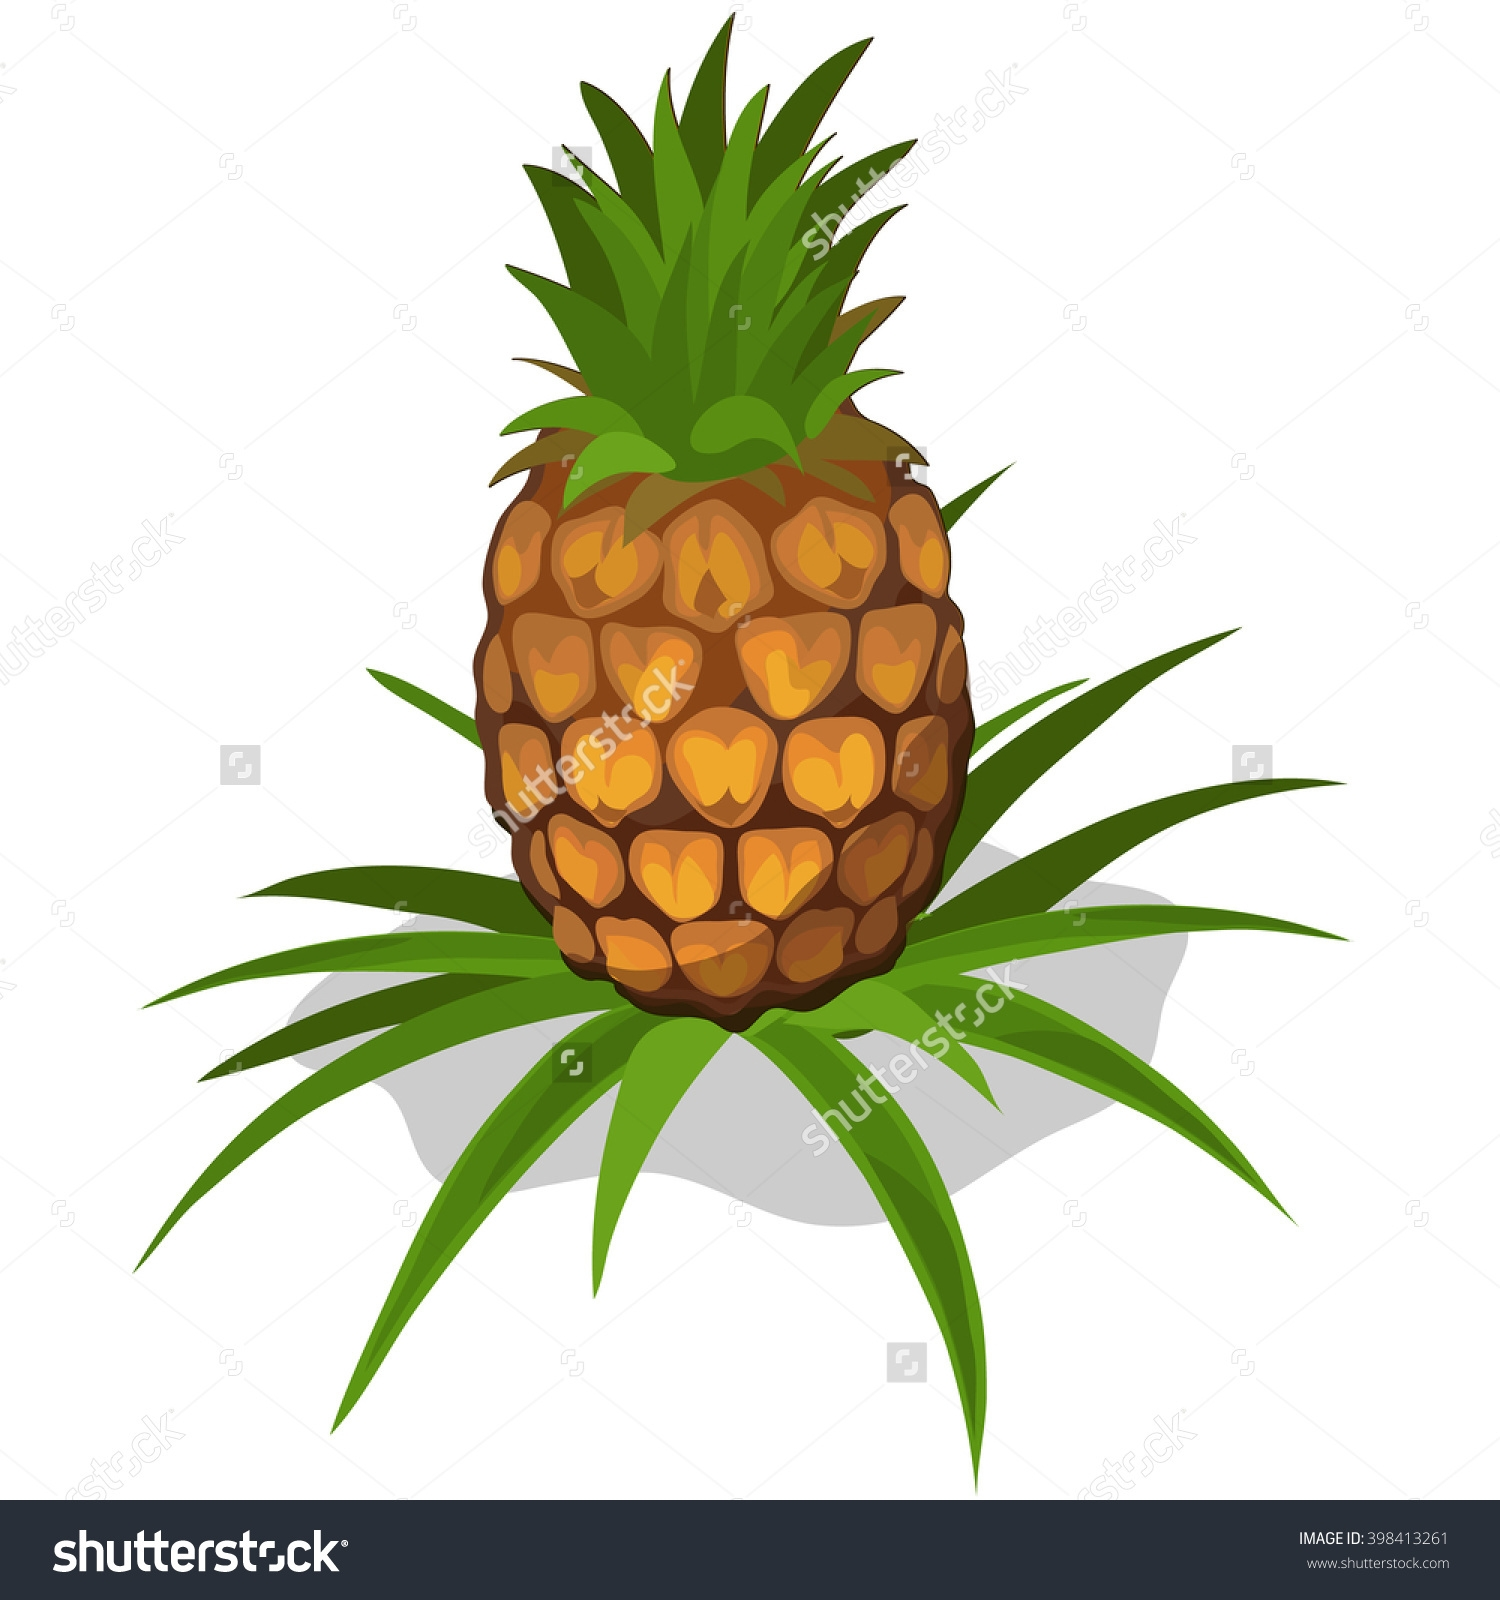 Pineapple Pictures   Free download on ClipArtMag